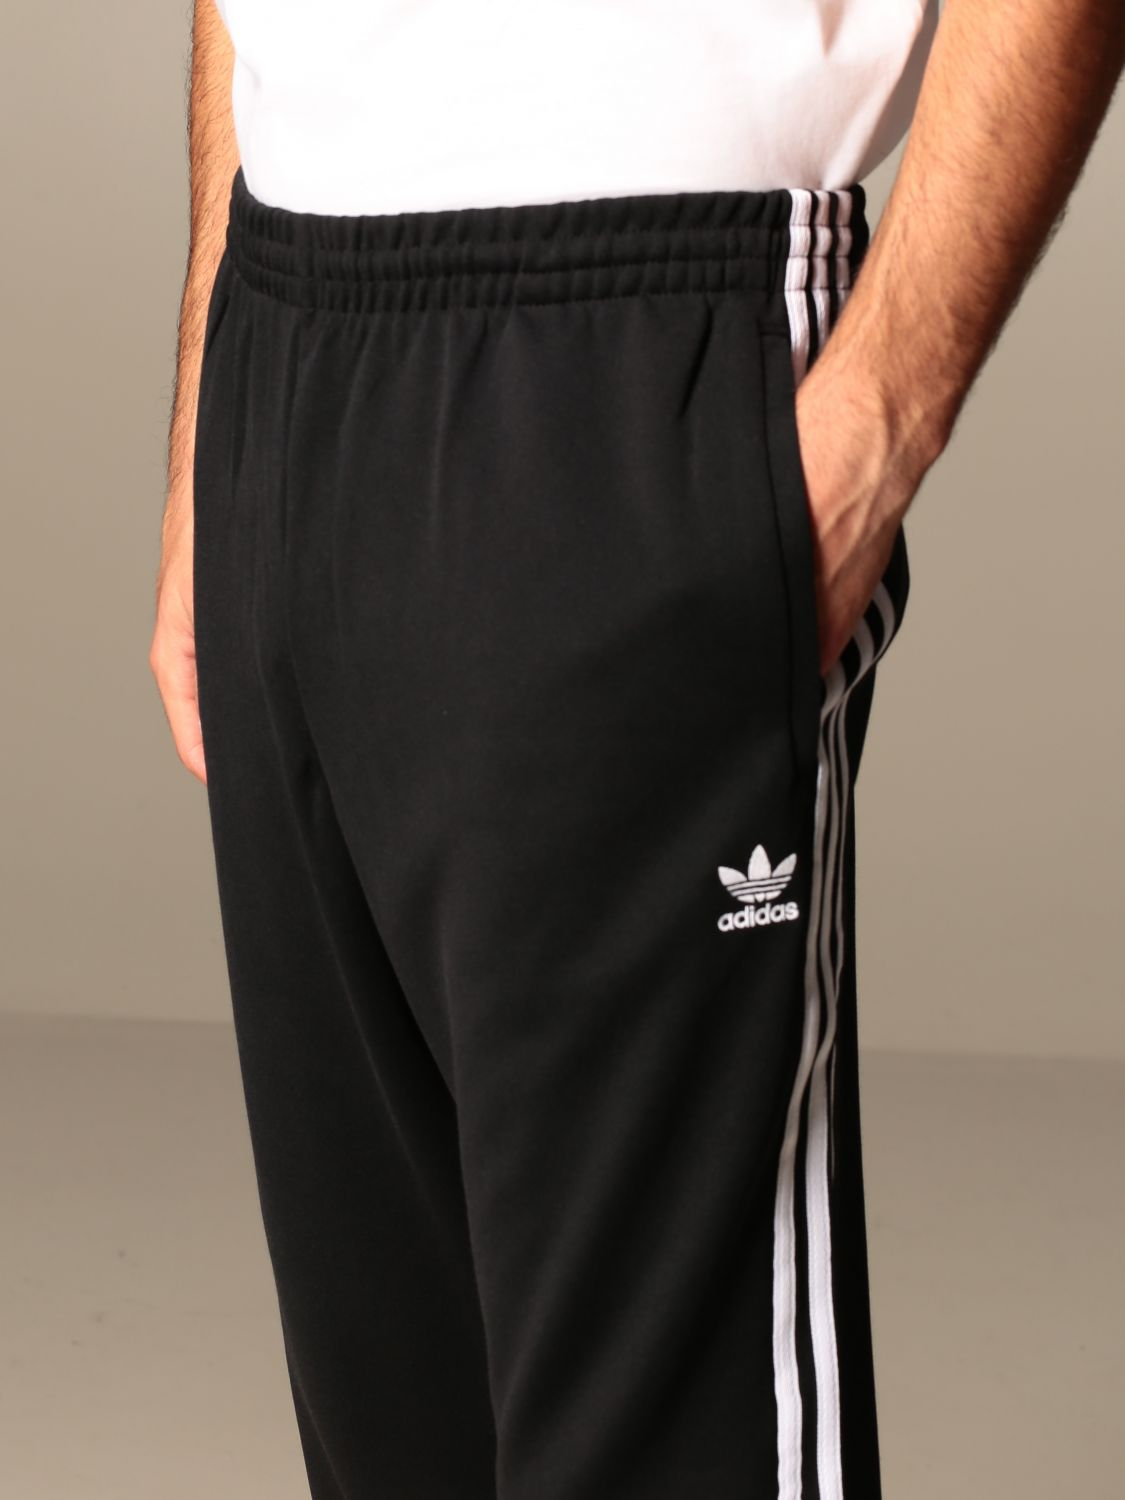 Trousers Adidas Originals: Trousers men Adidas Originals black 4